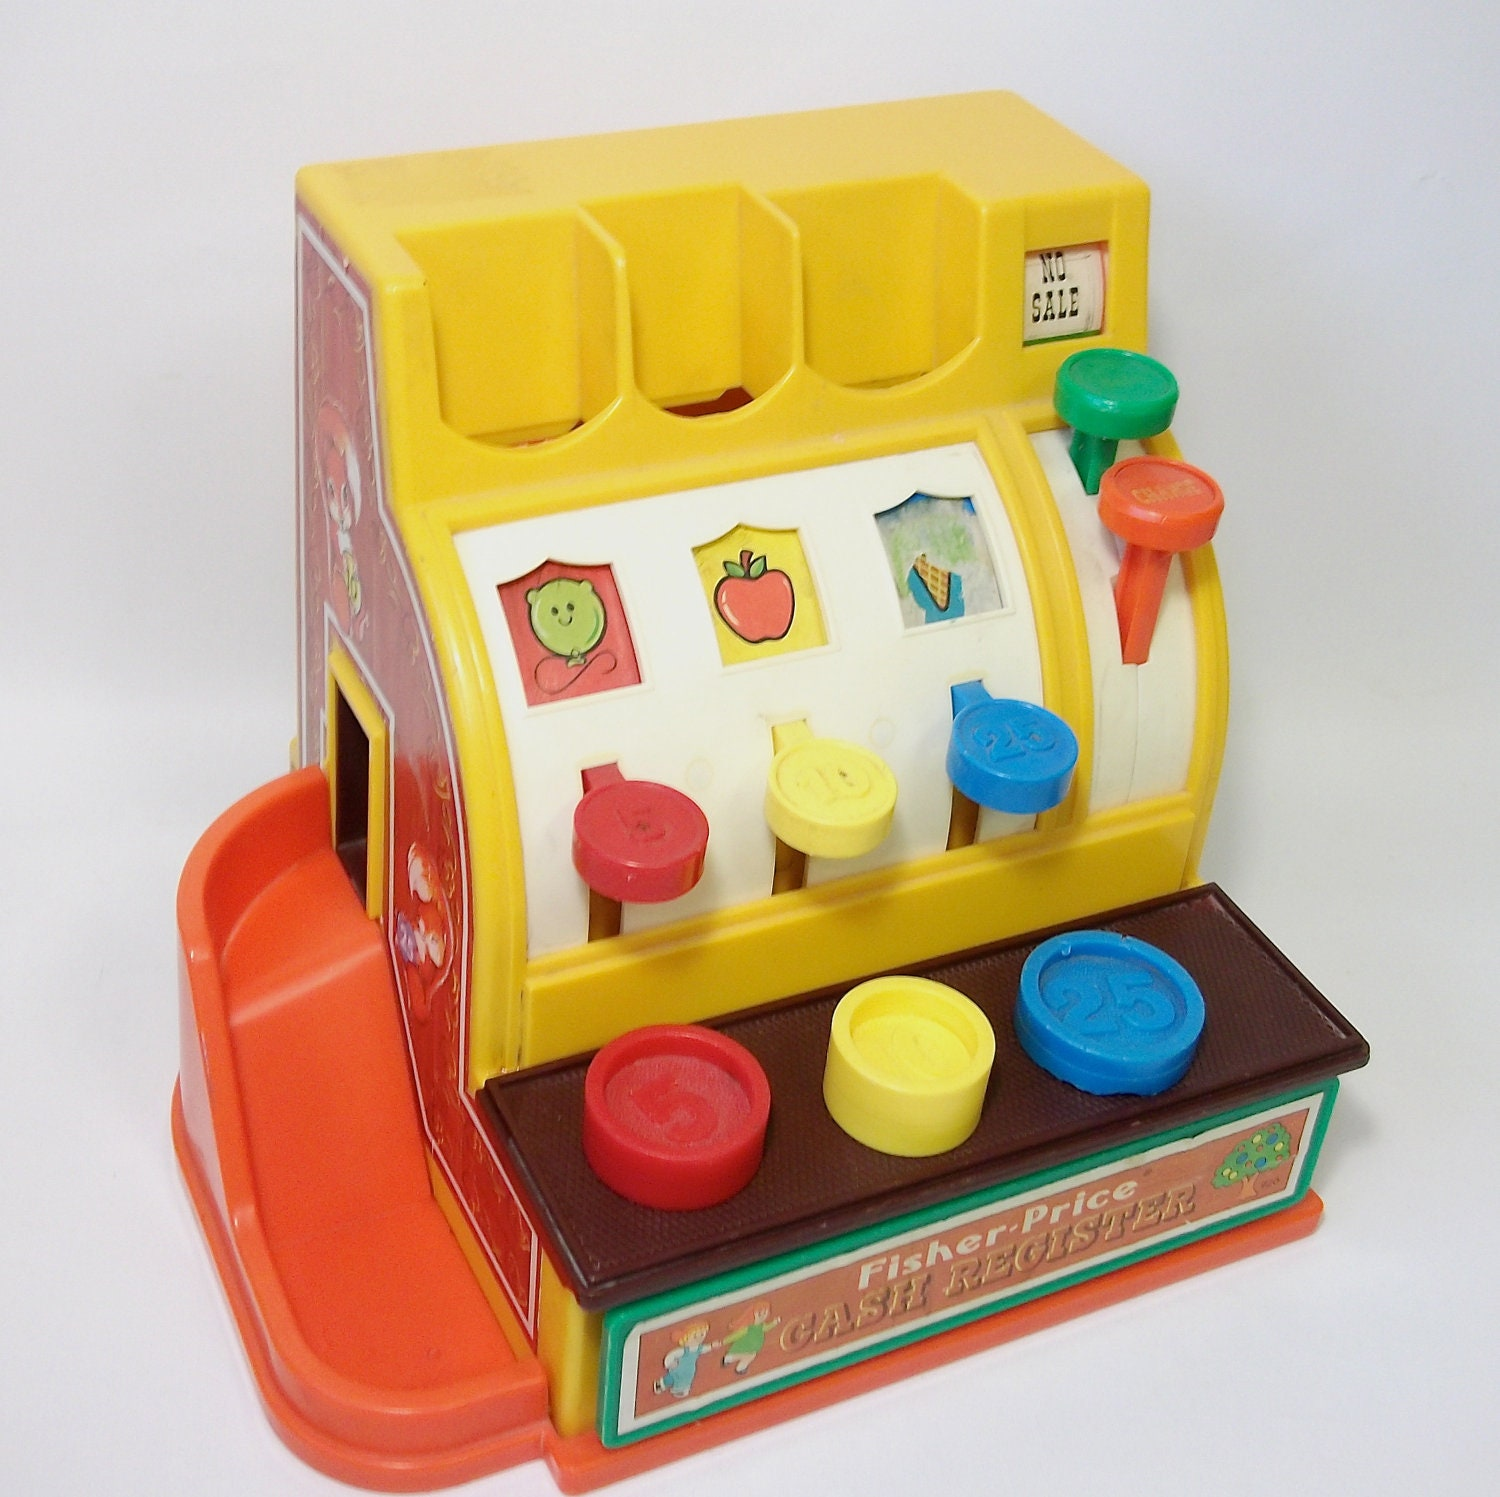 Fisher Price Toys : Vintage fisher price cash register toy for